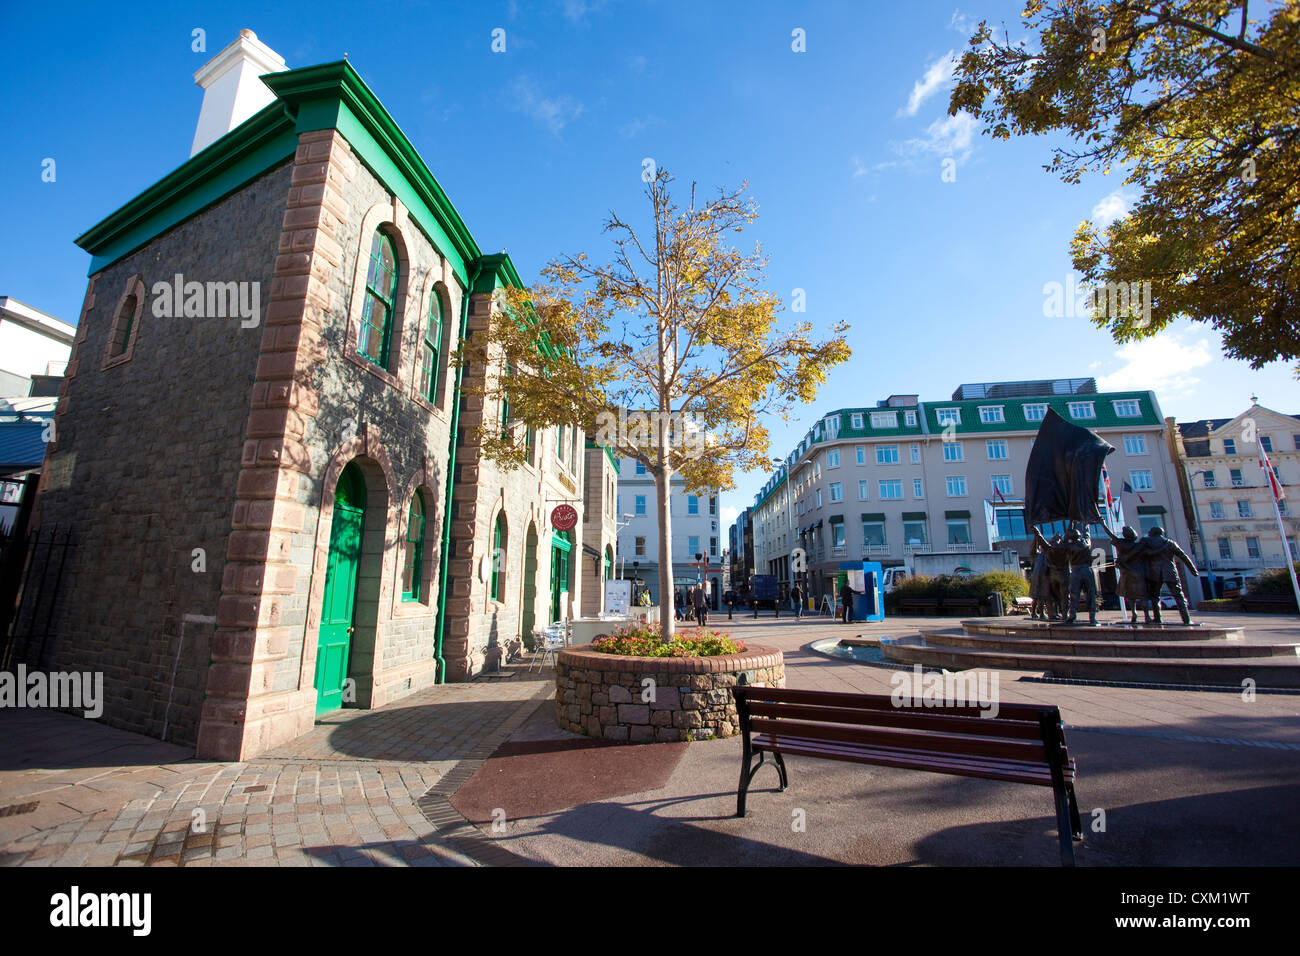 Liberty Wharf, St Helier, Jersey, Channel islands, UK - Stock Image